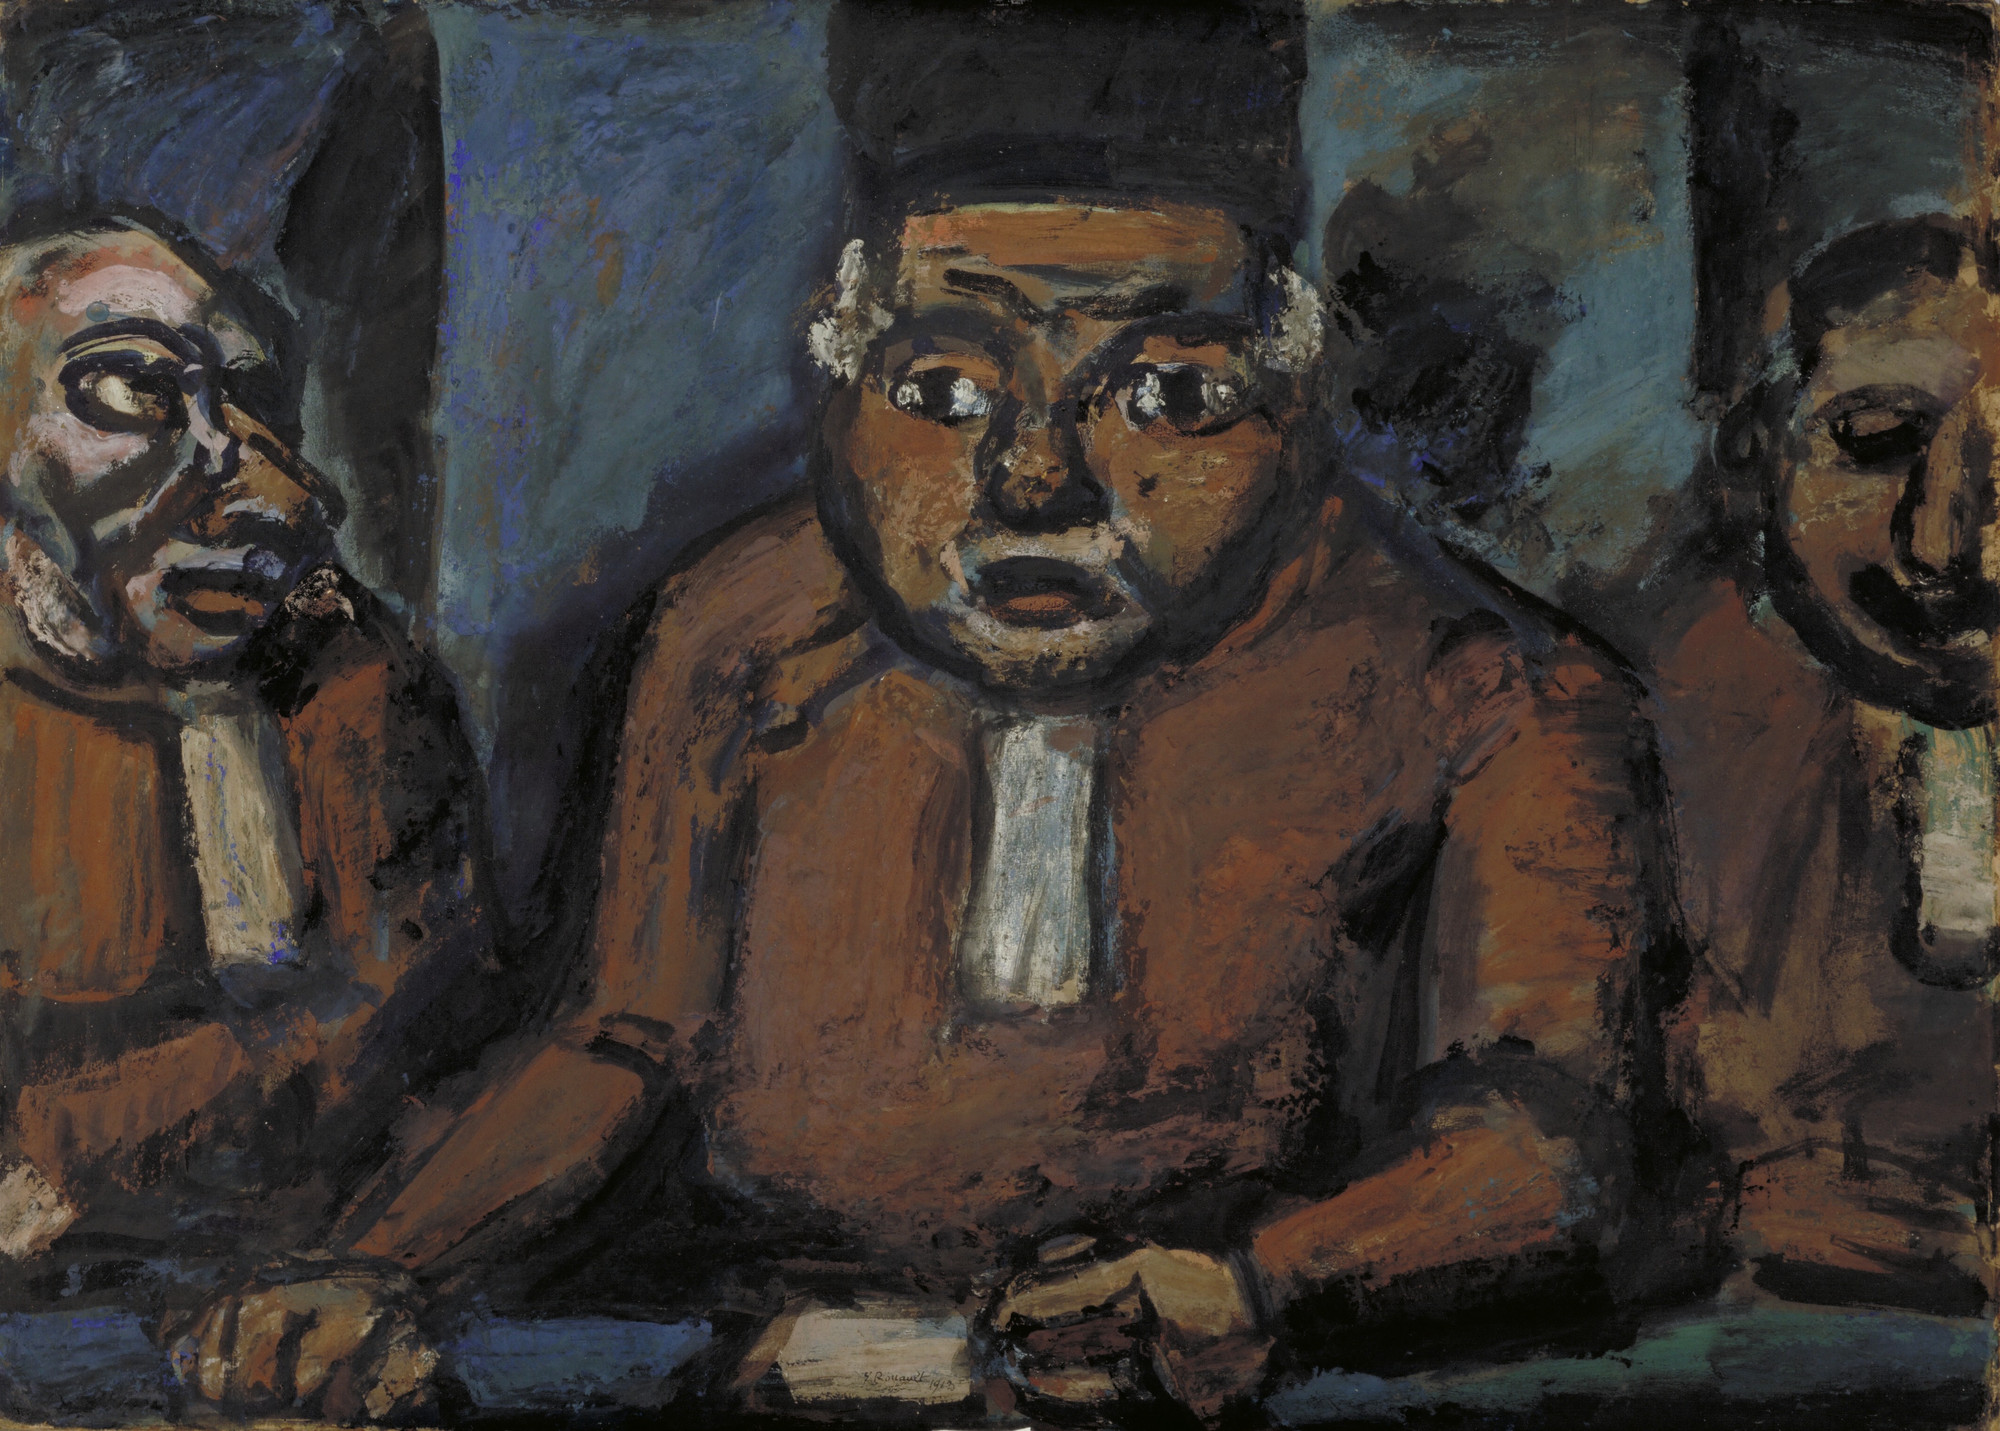 Georges Rouault. The Three Judges. 1913